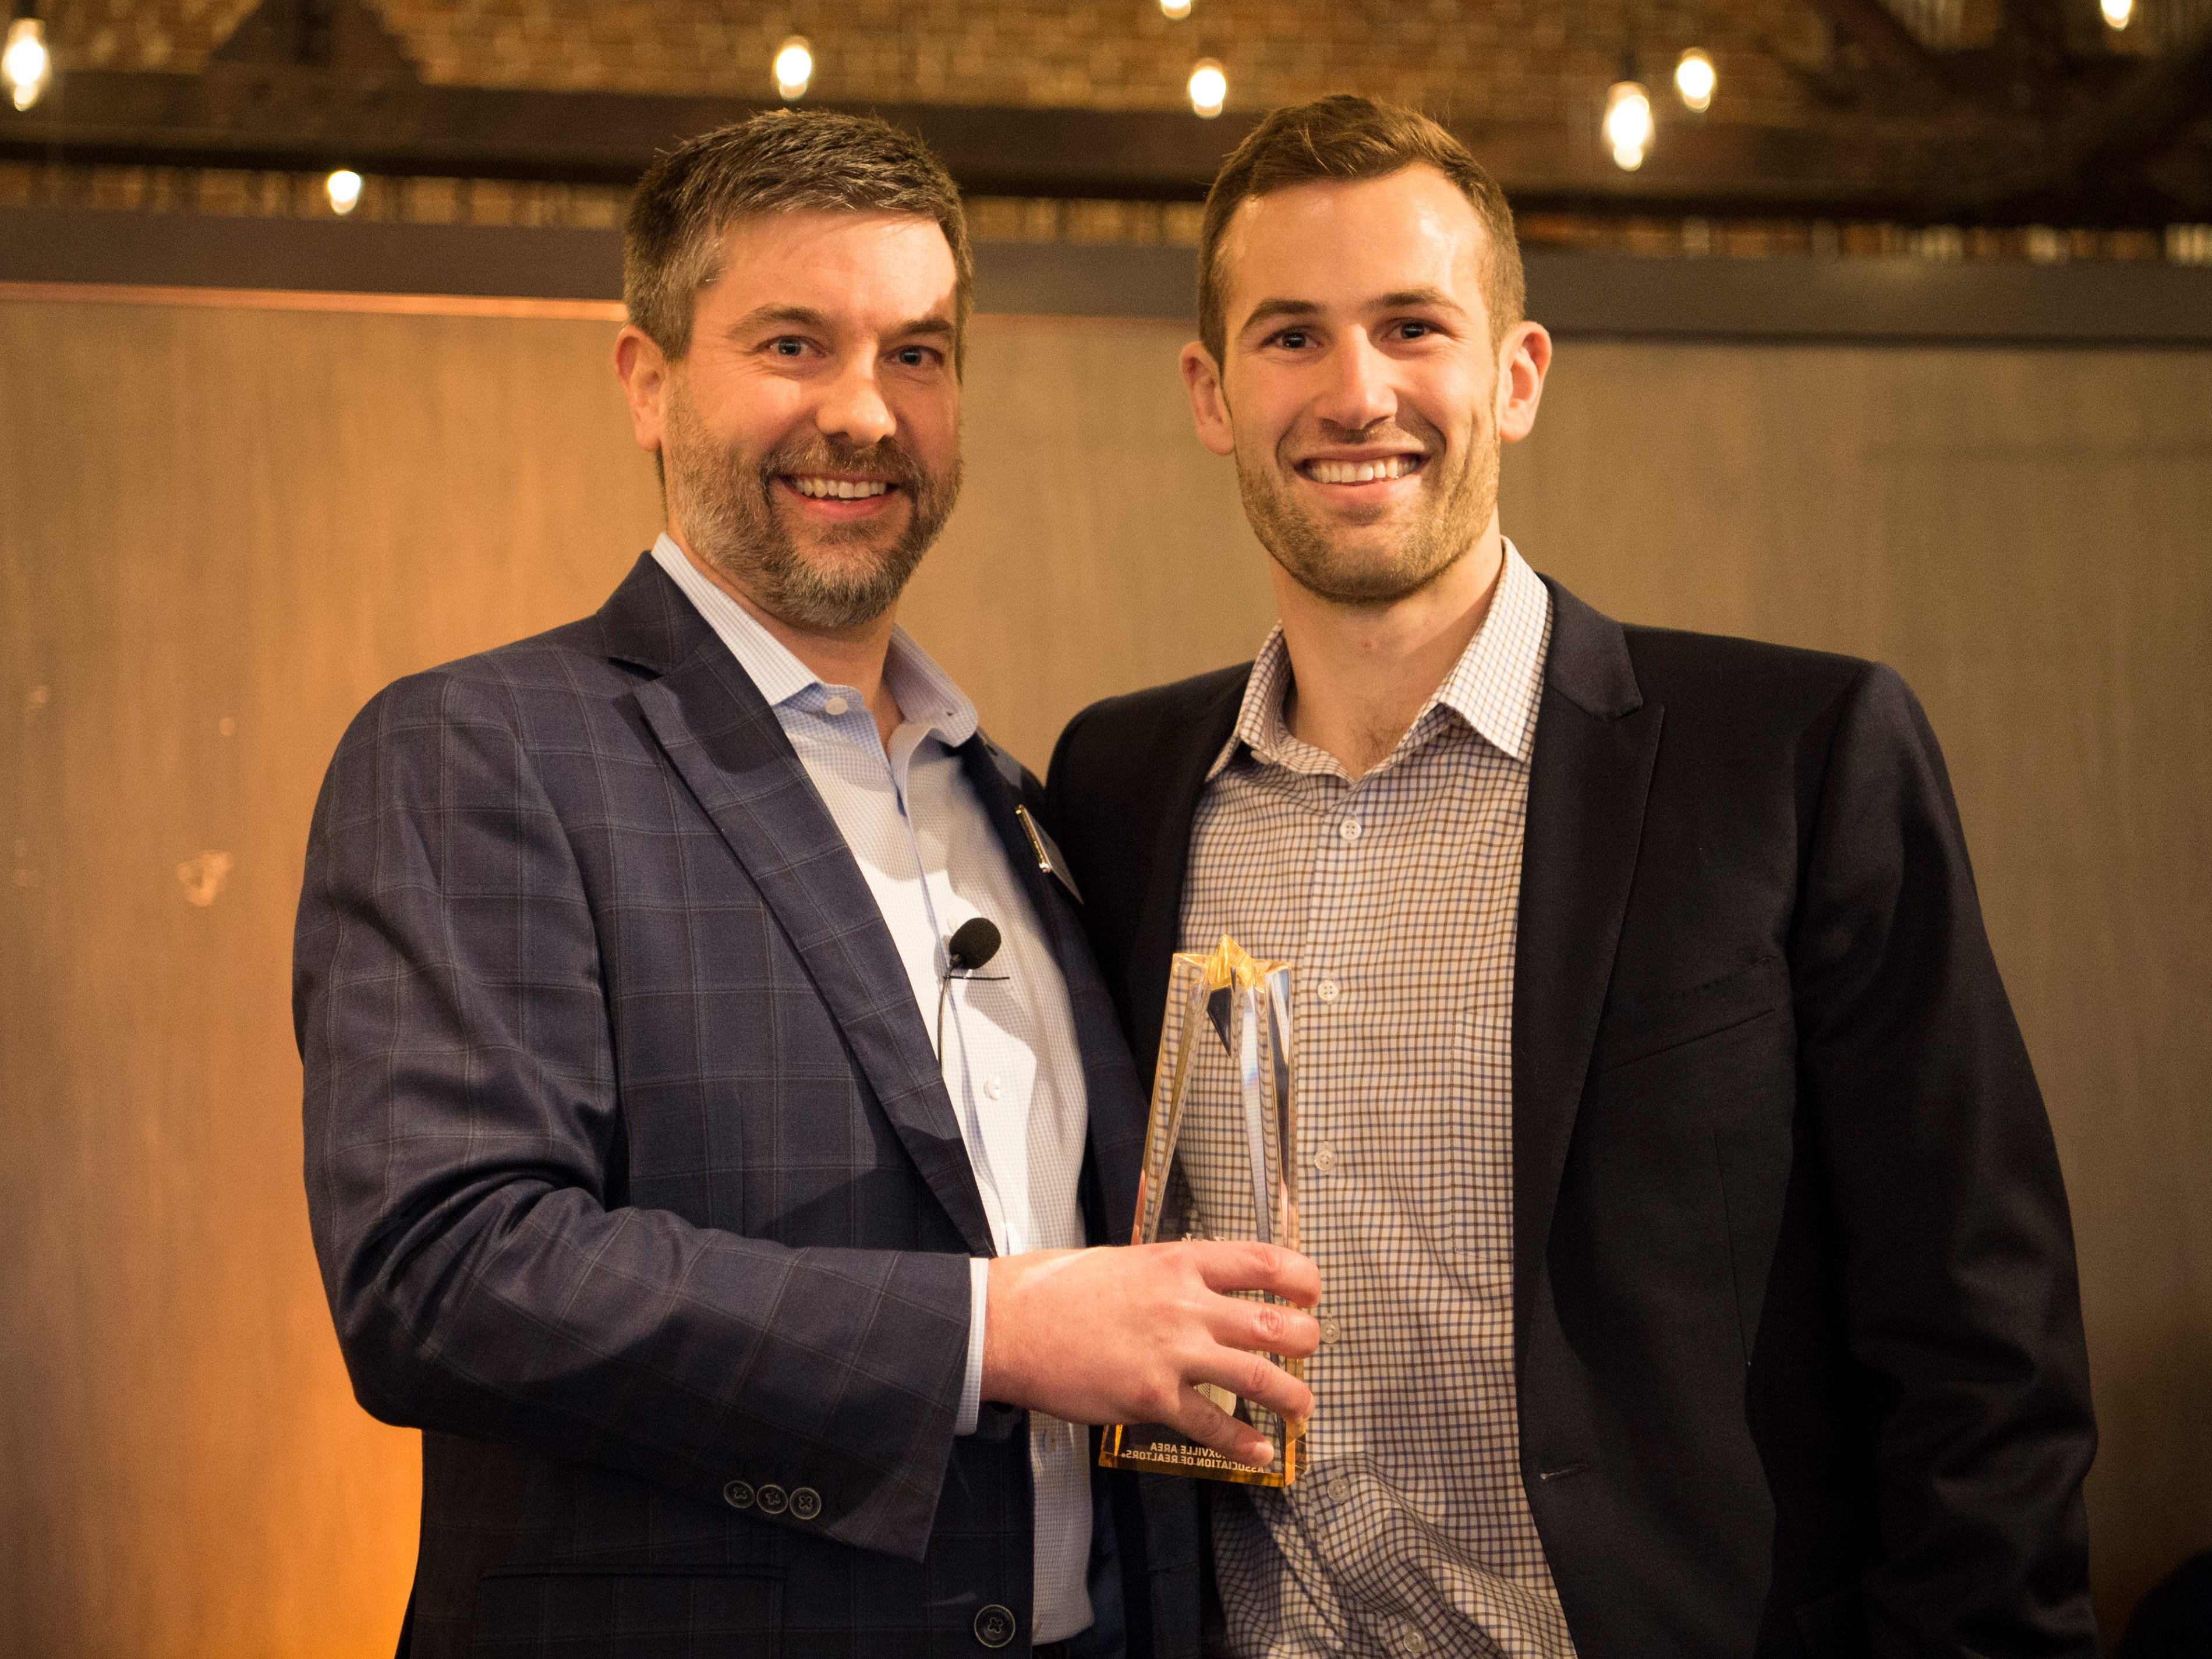 Zach Sale, right, is awarded Rising Star at the Commercial and Residential Real Estate Awards held at The Press Room in Knoxville on Tuesday, February 12, 2019.